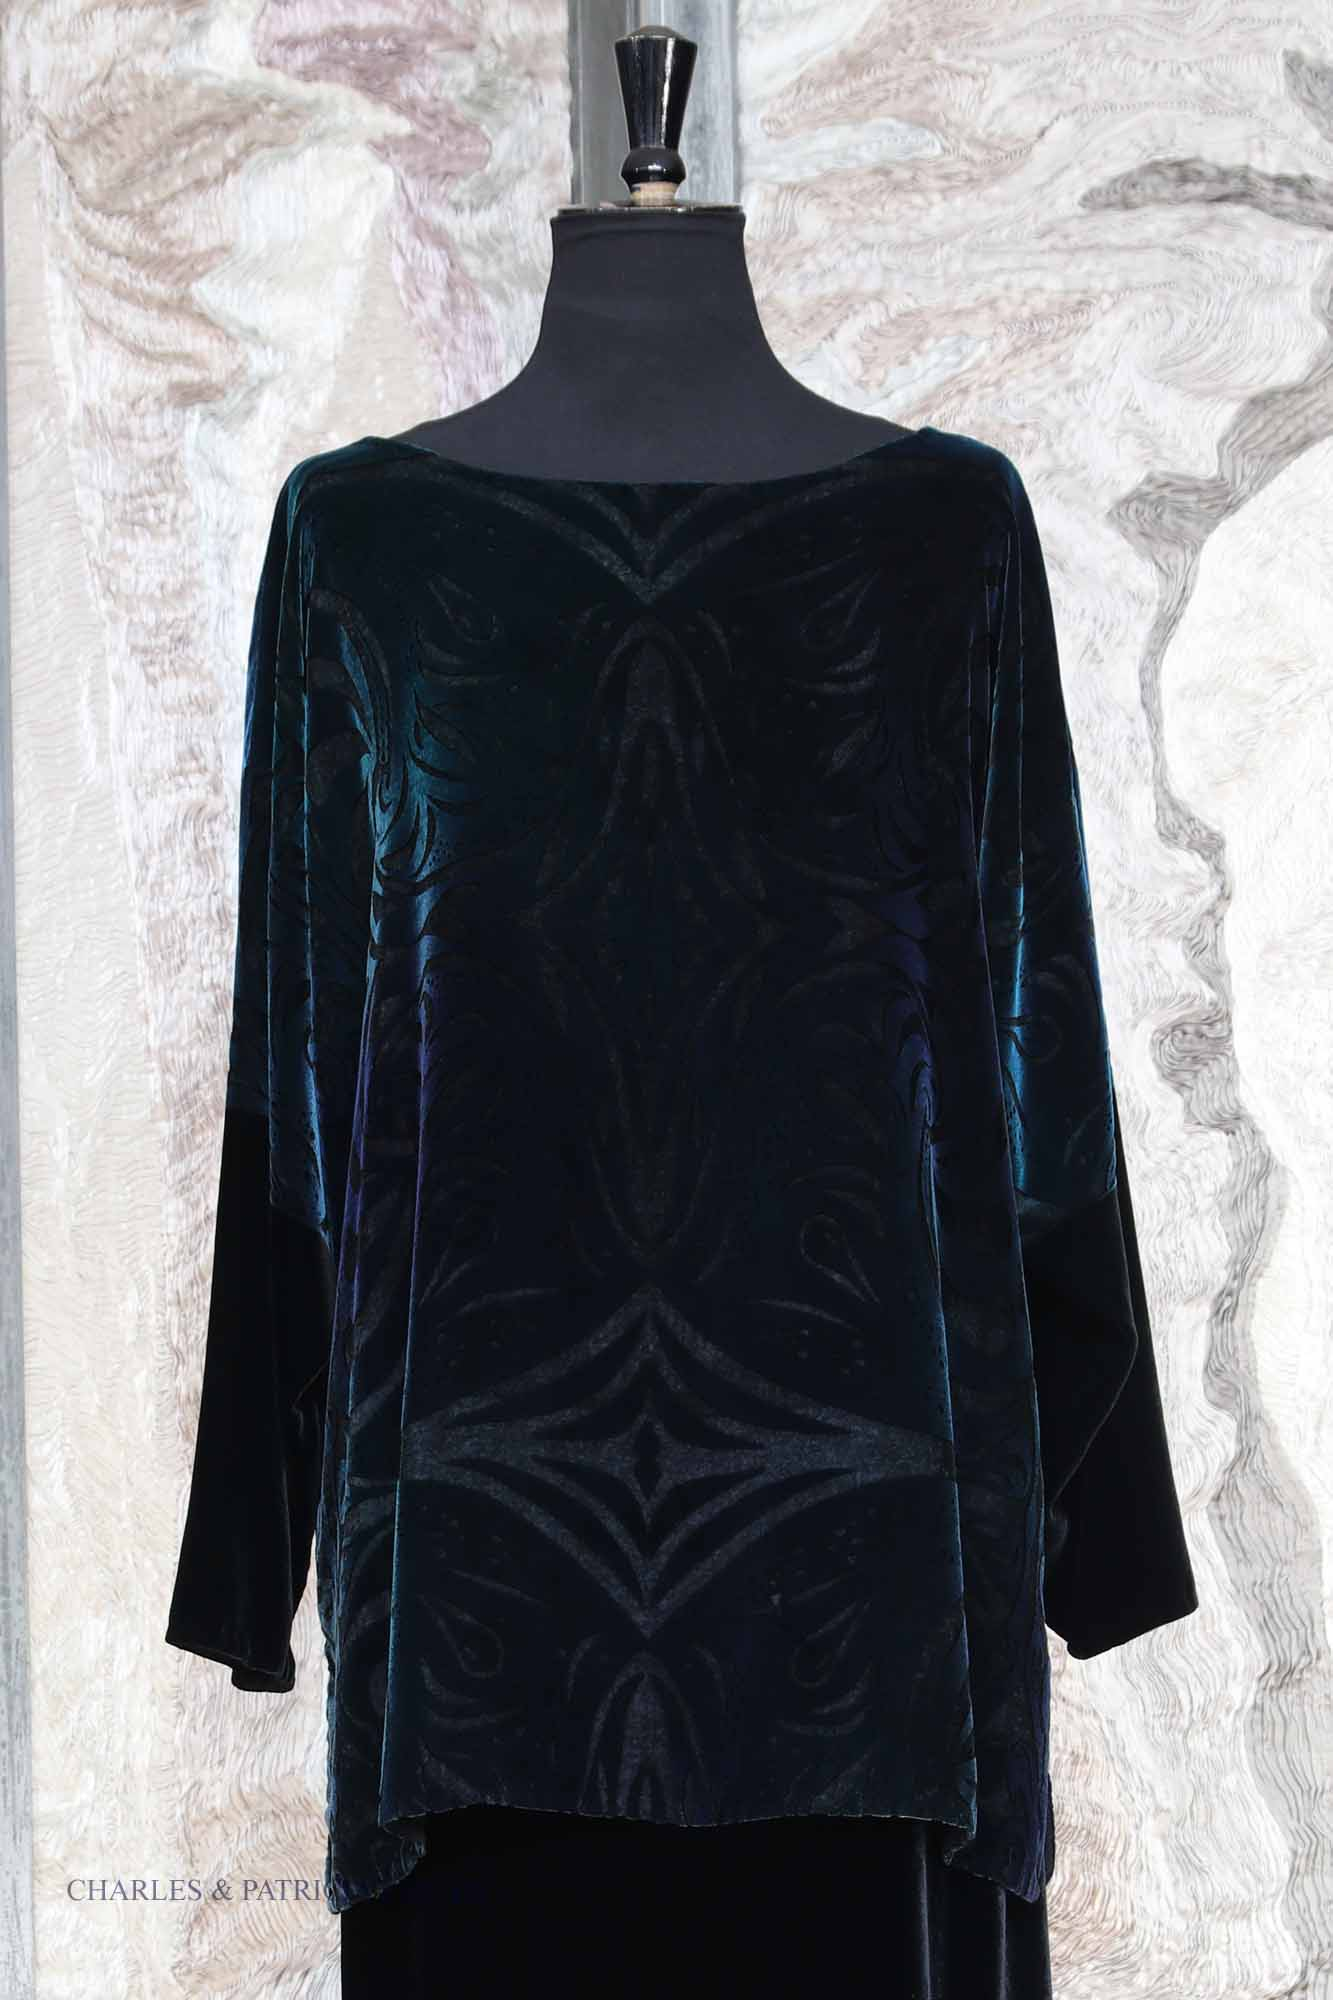 Silk and Viscose Velvet Tabard Top in Black and Peacock with QEH Embossed Print